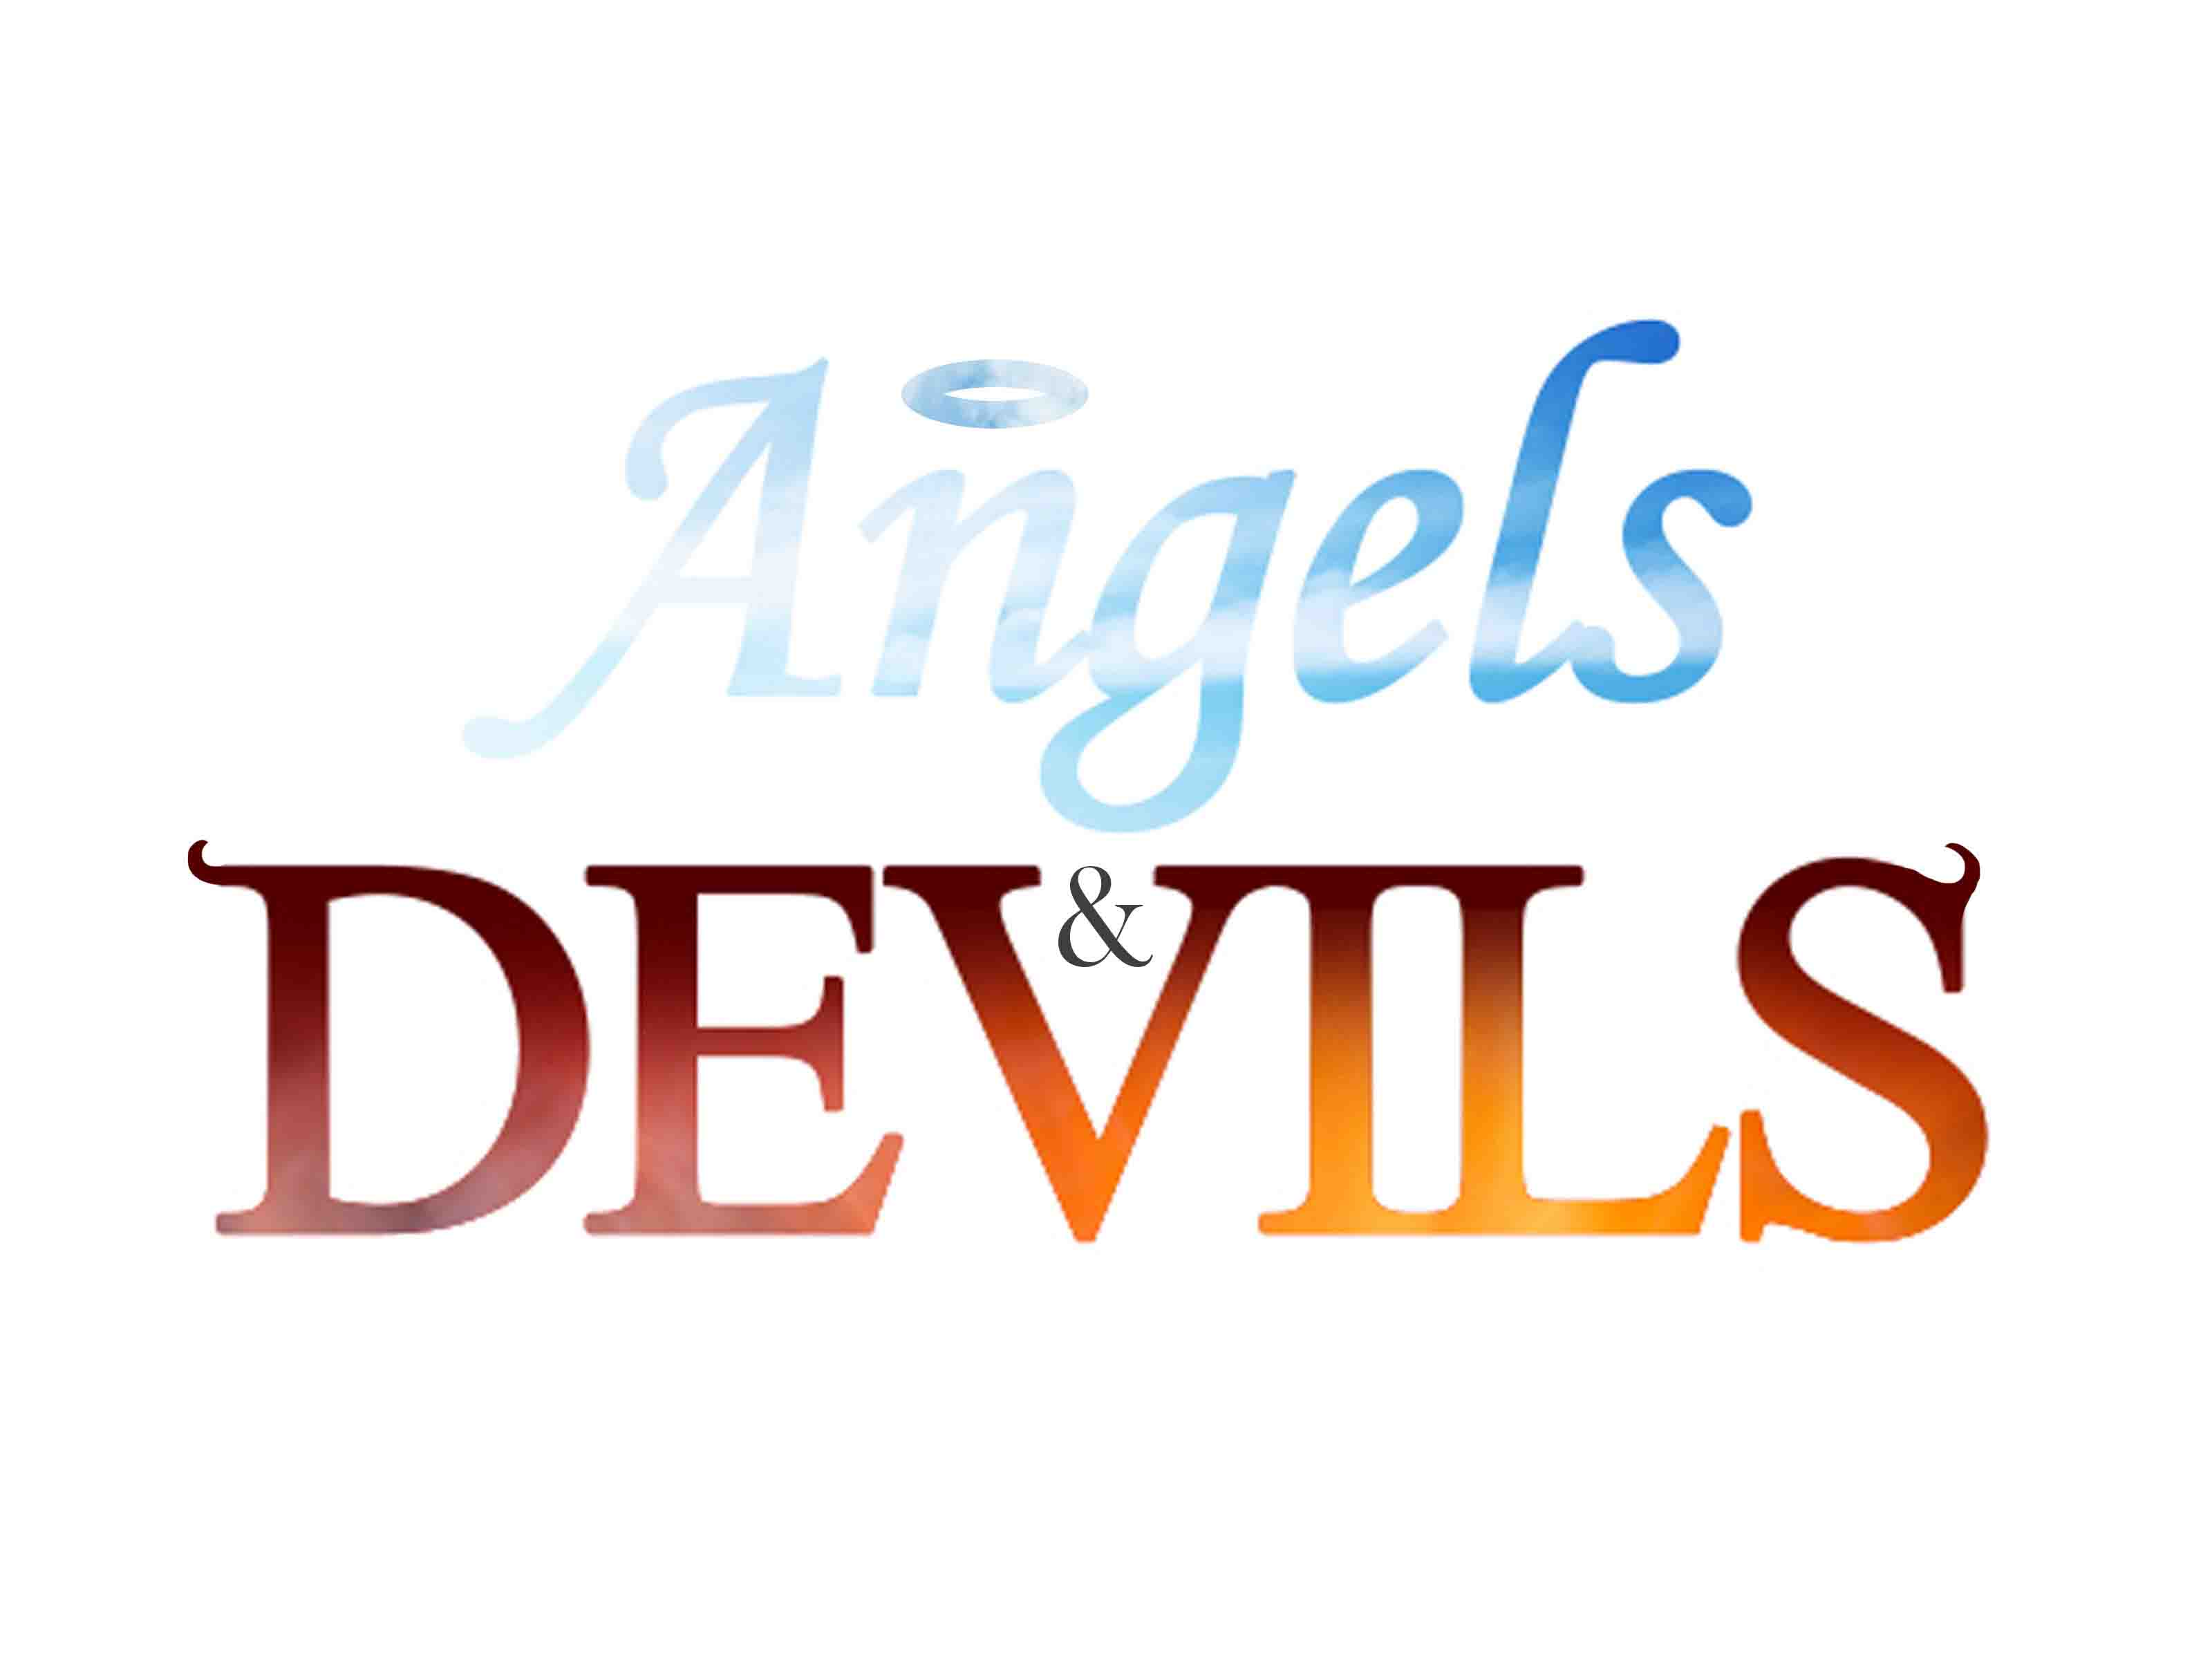 Hen Party Themes - Angels & Devils